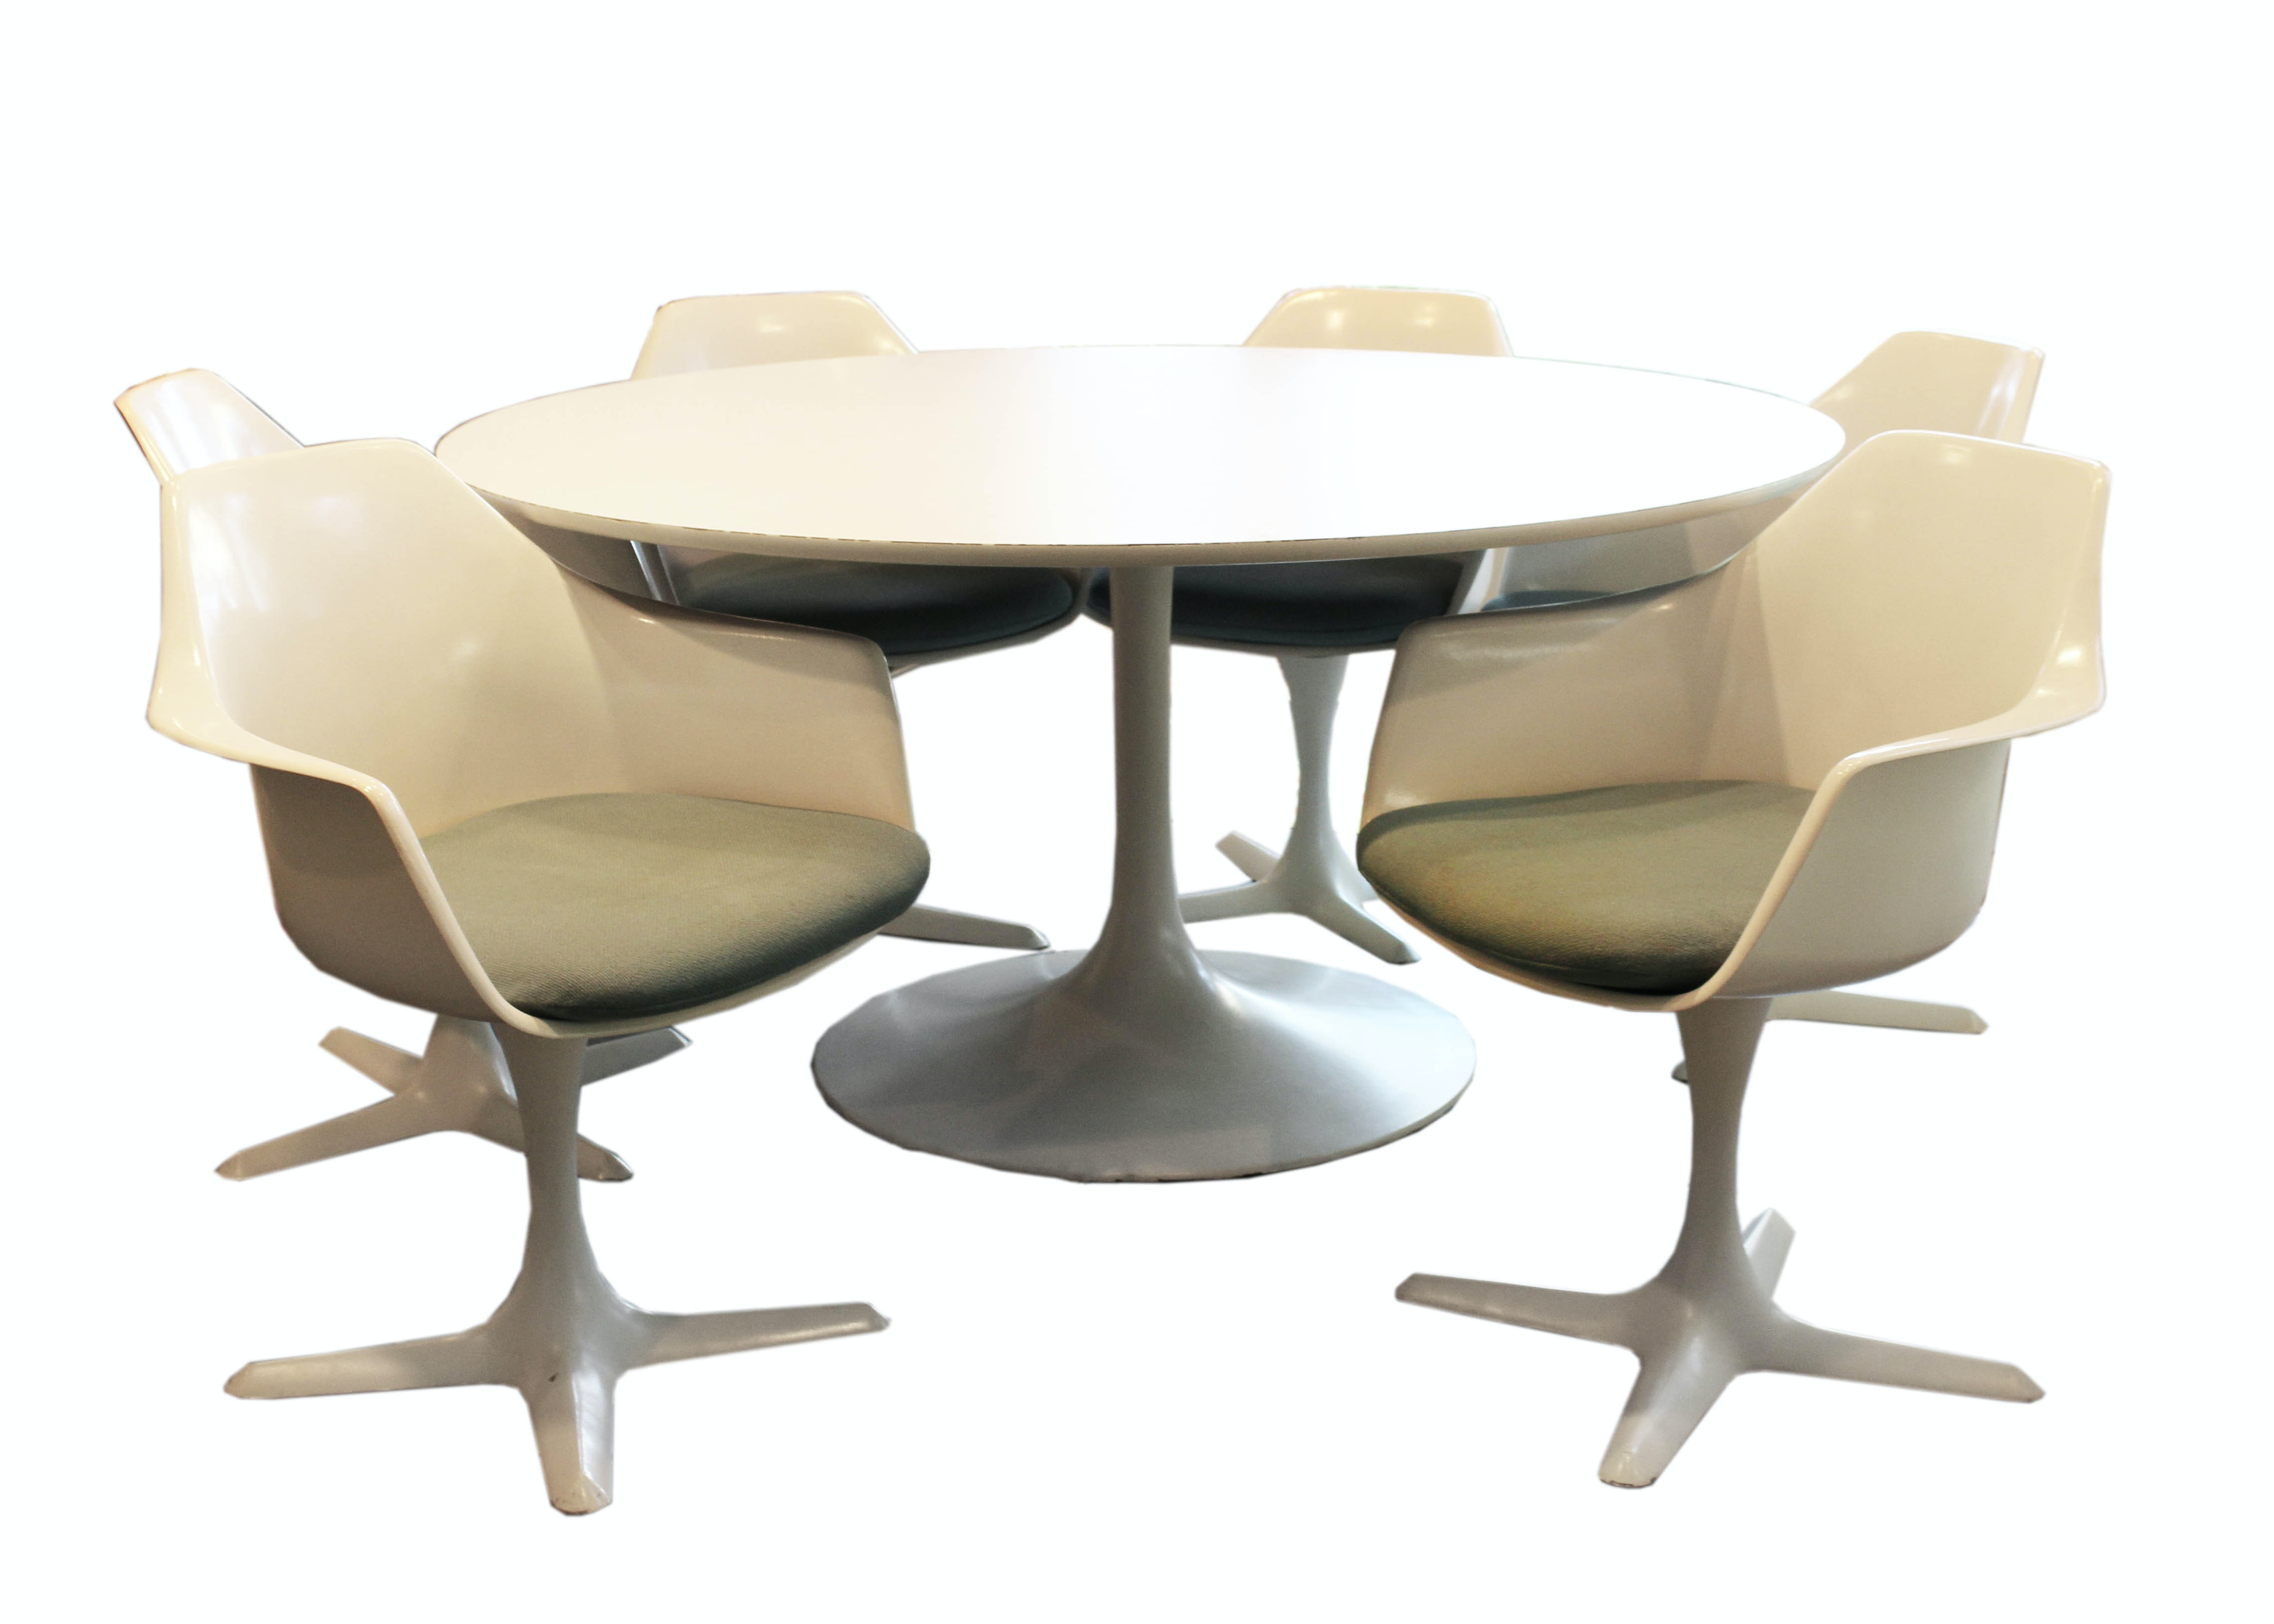 Merveilleux Mid Century Modern Burke Dining Table With Tulip Chairs